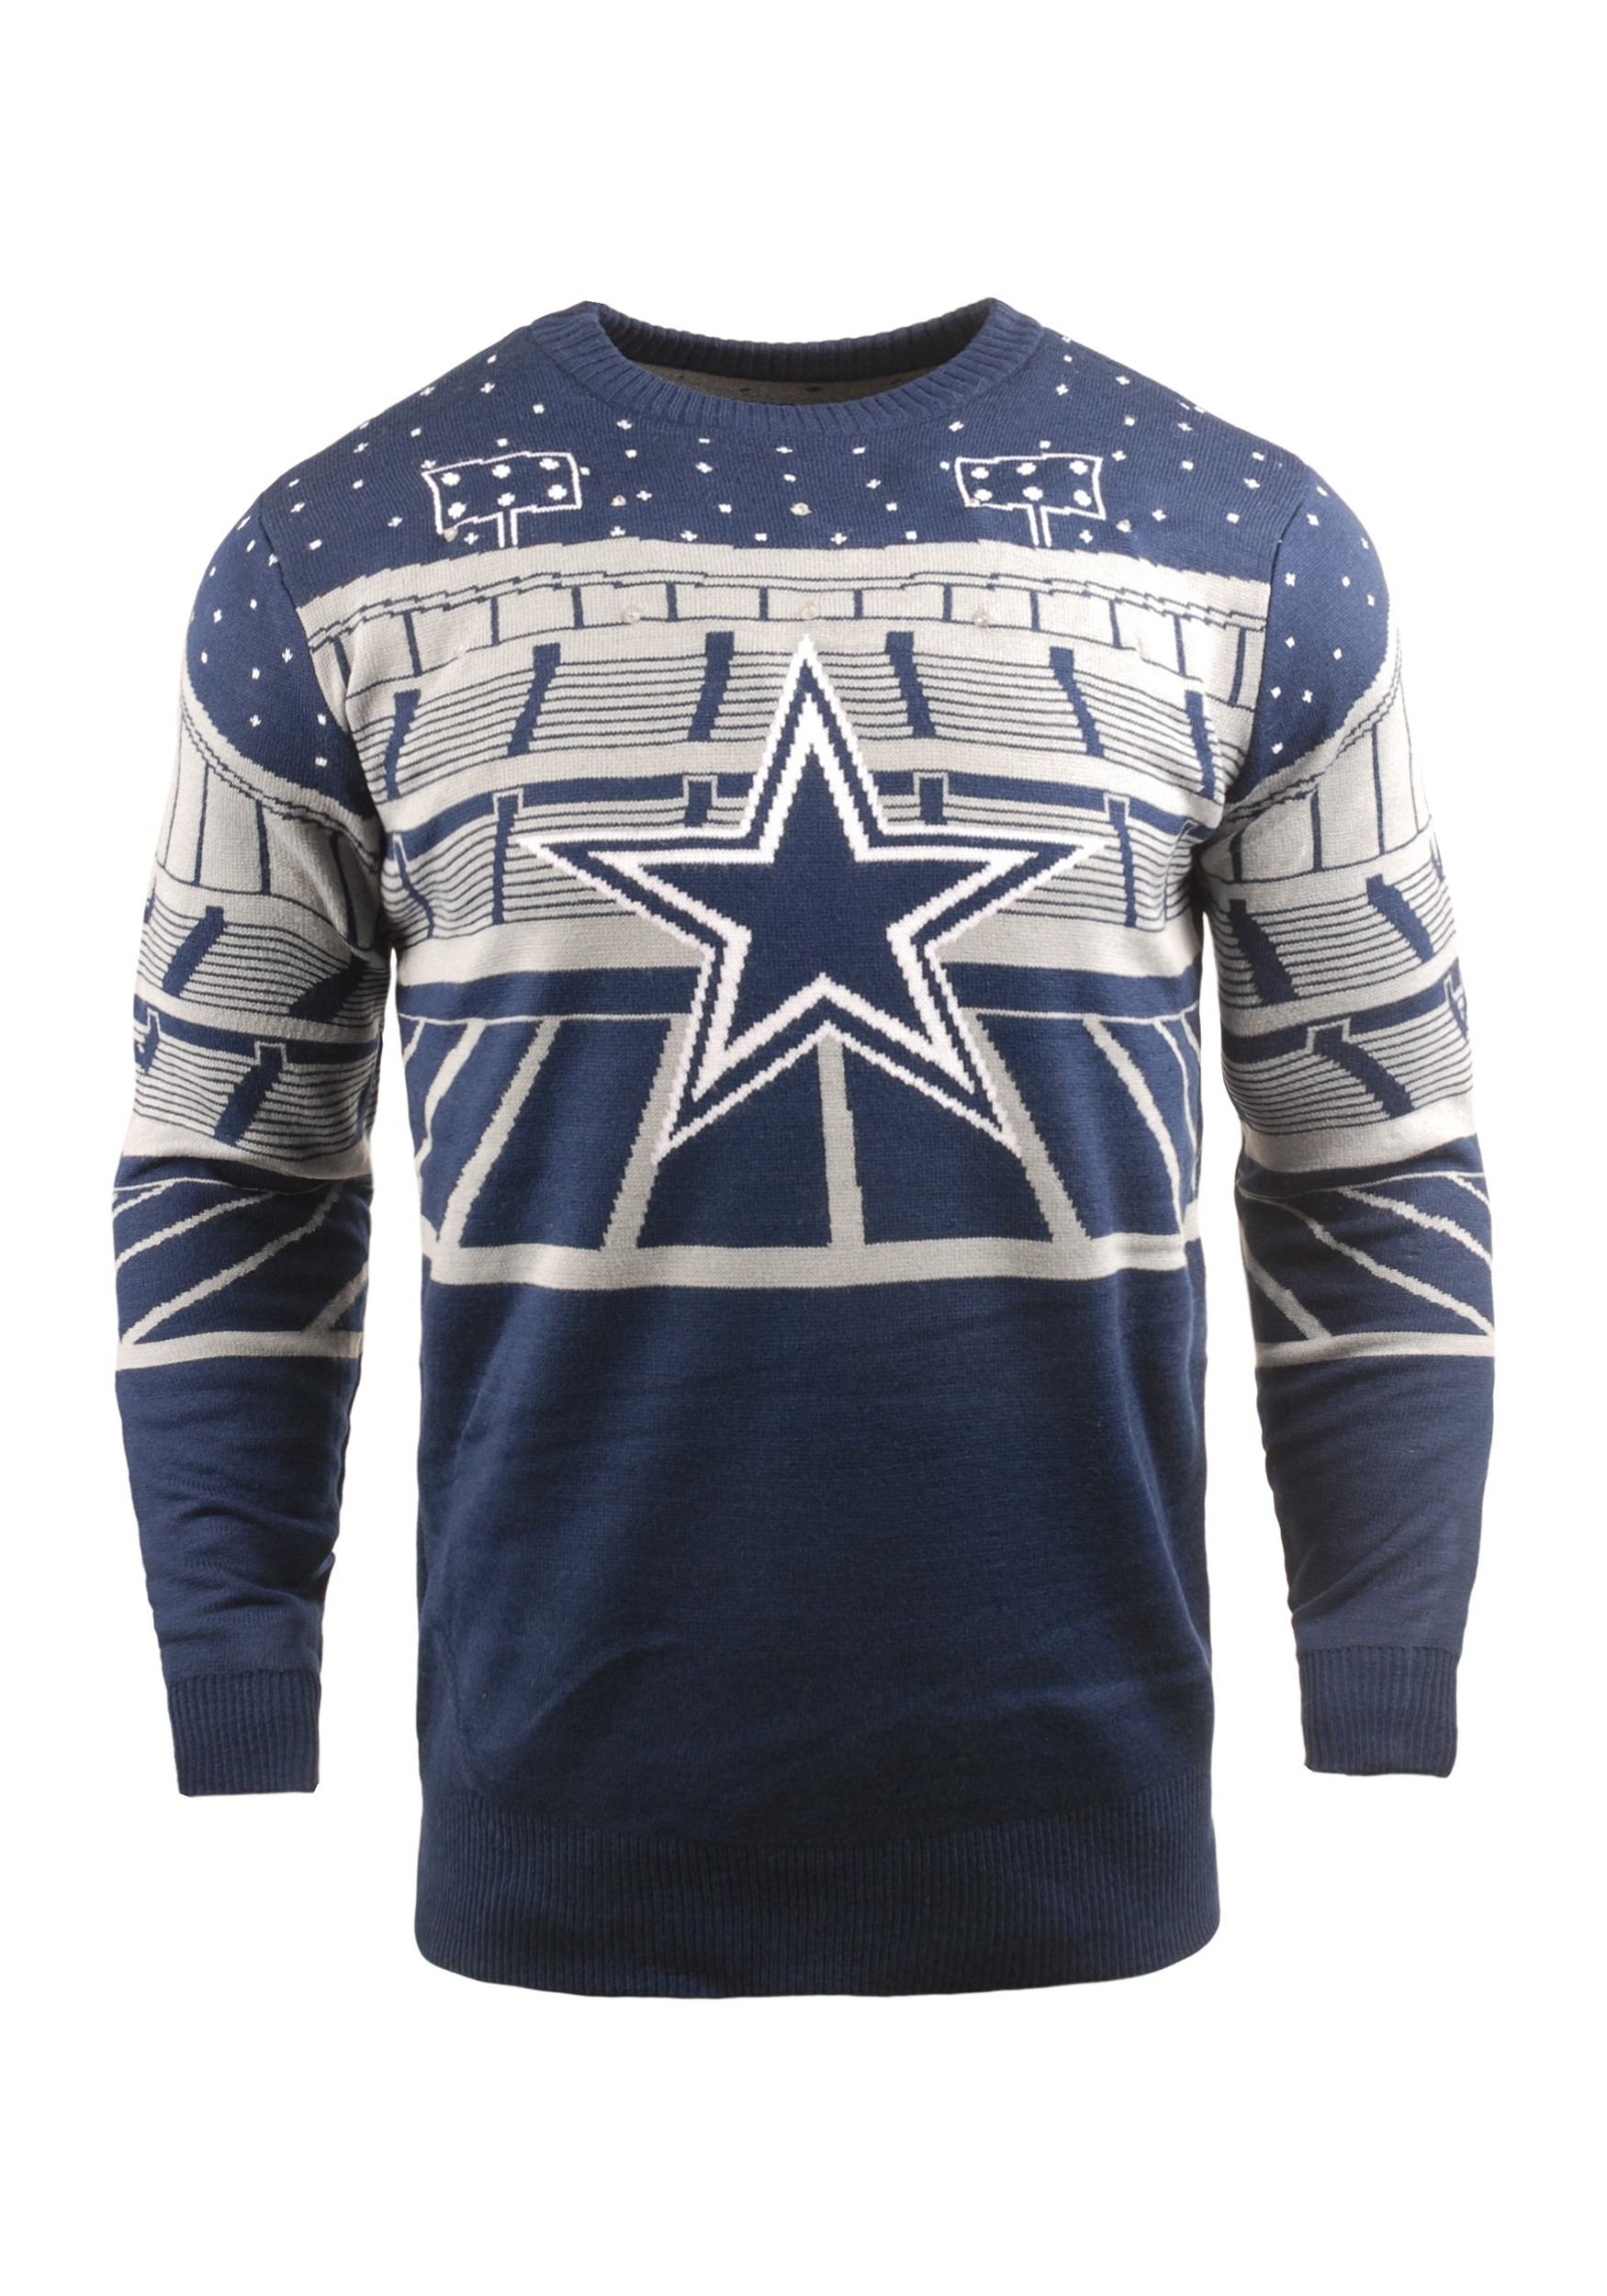 9205d43043d Light Up Dallas Cowboys Bluetooth Ugly Christmas Sweater1